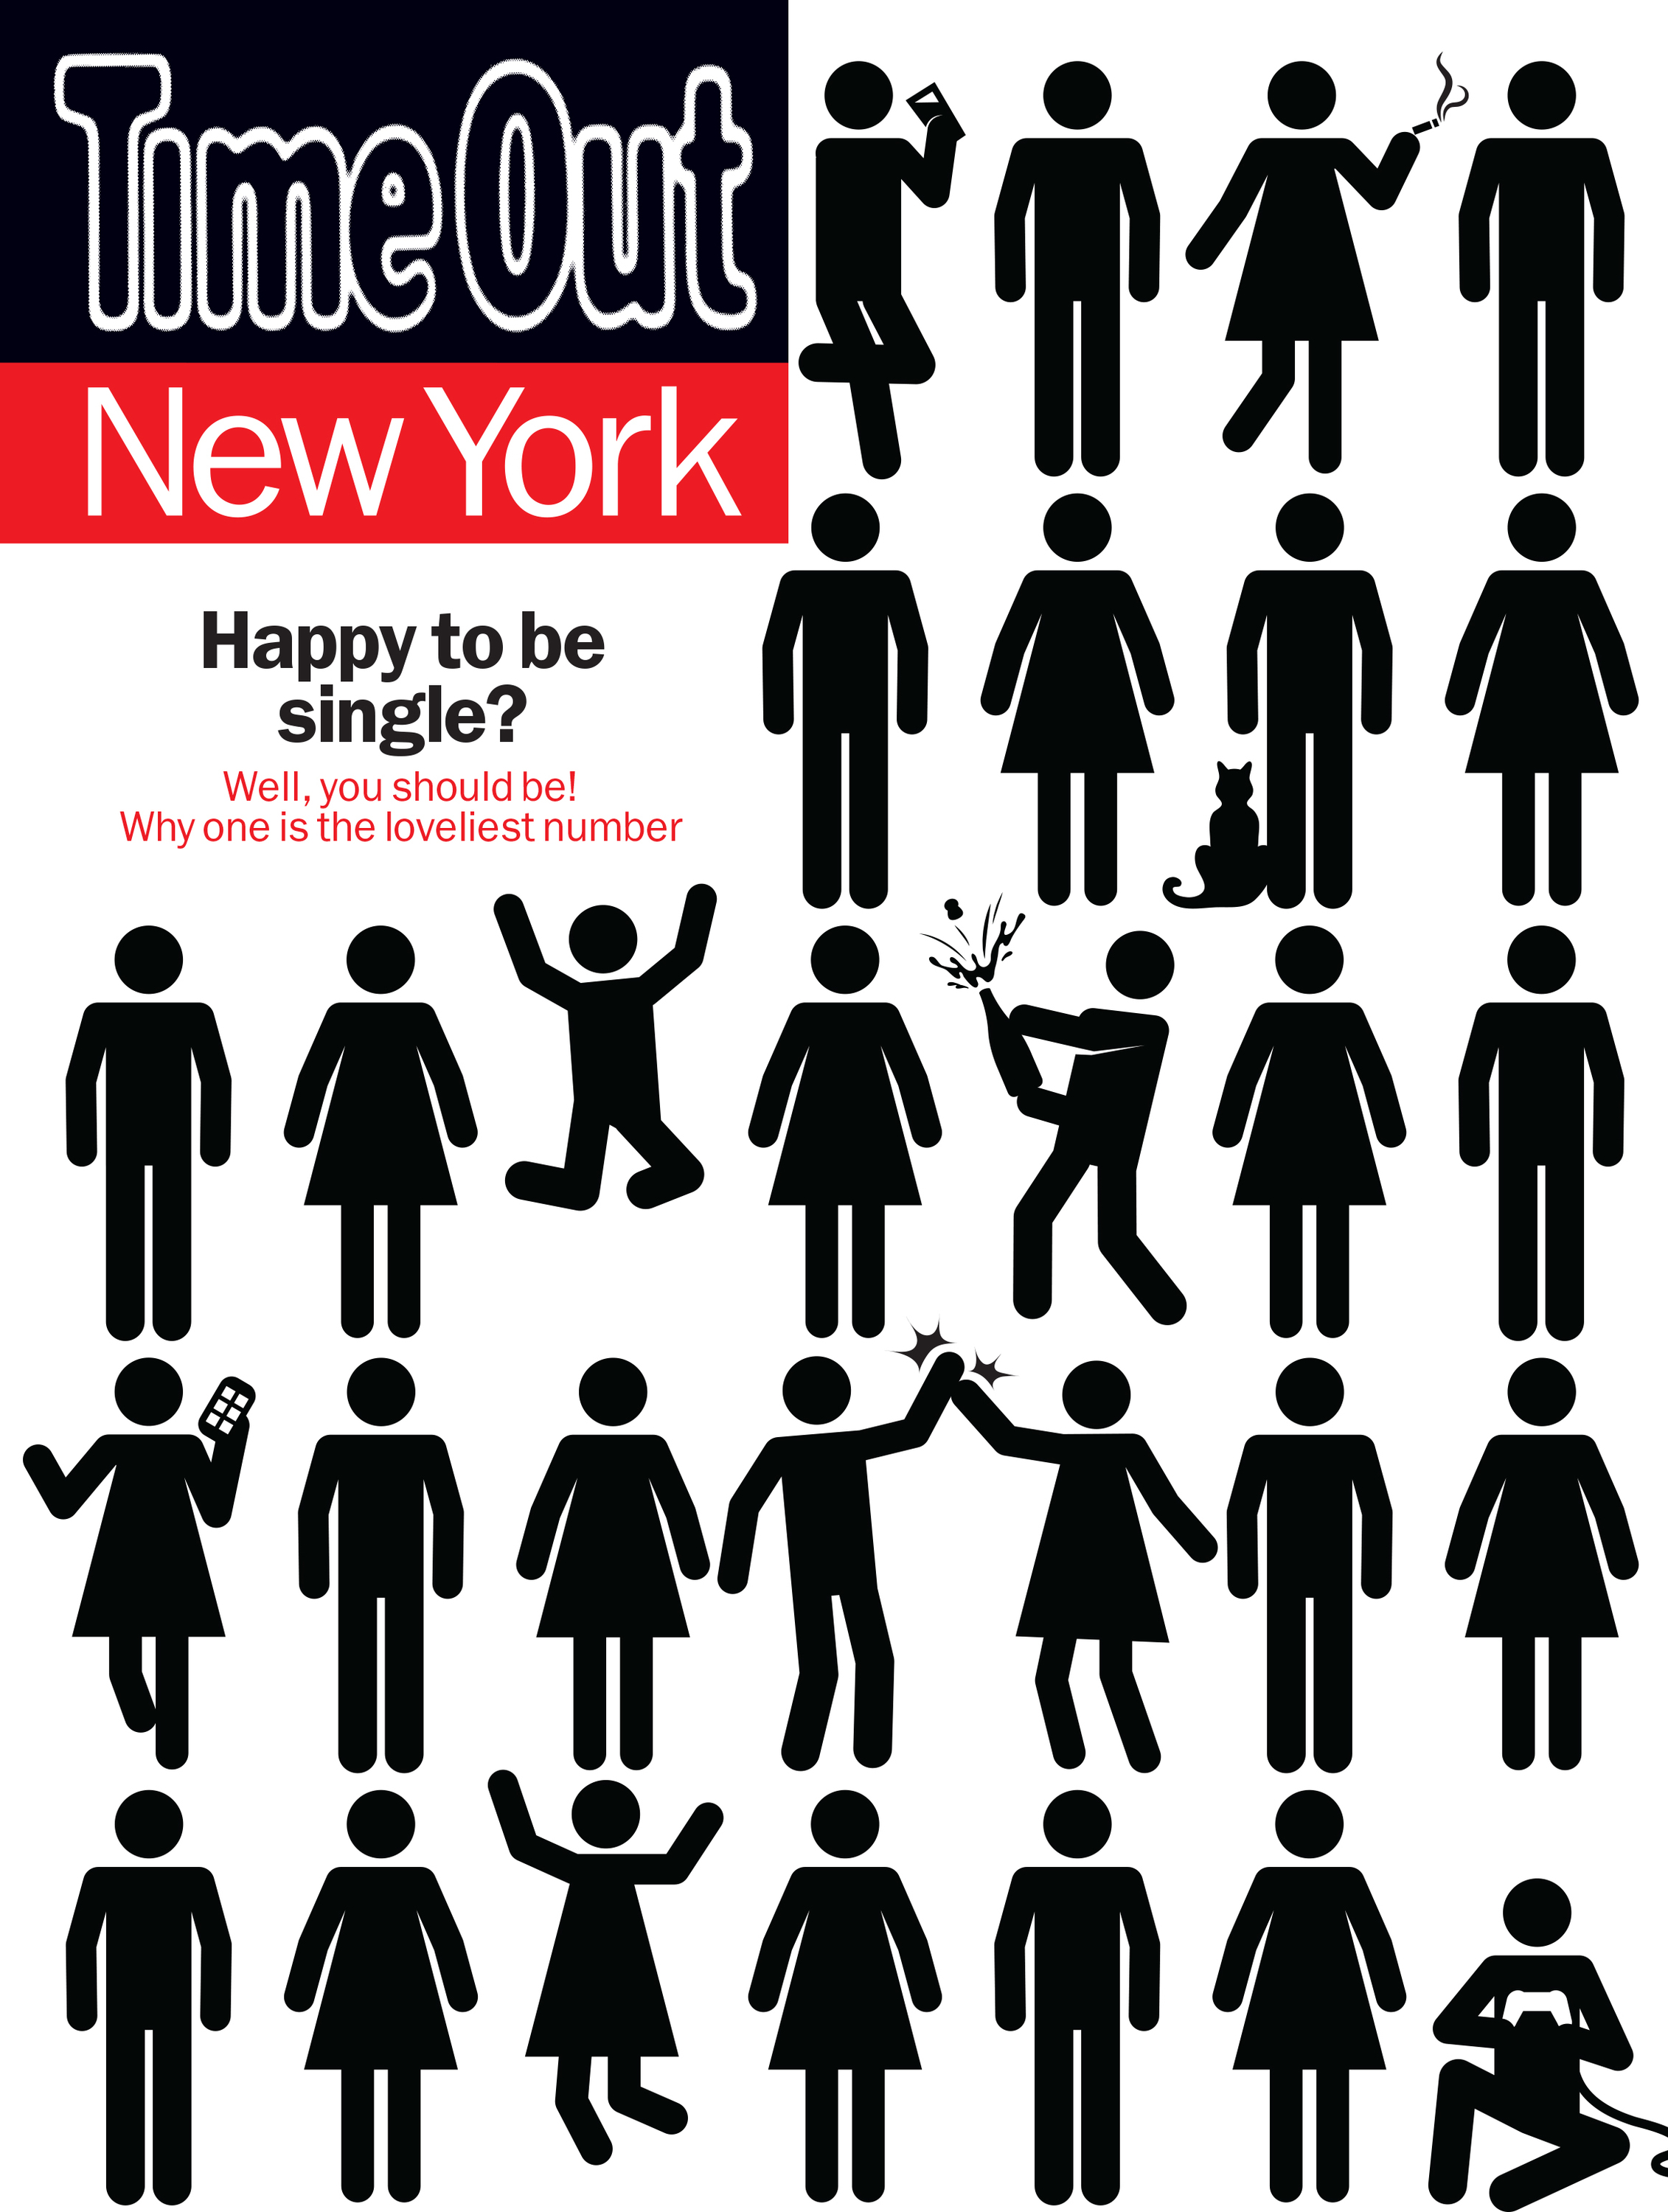 In this week's issue of Time Out New York, we celebrate the single life